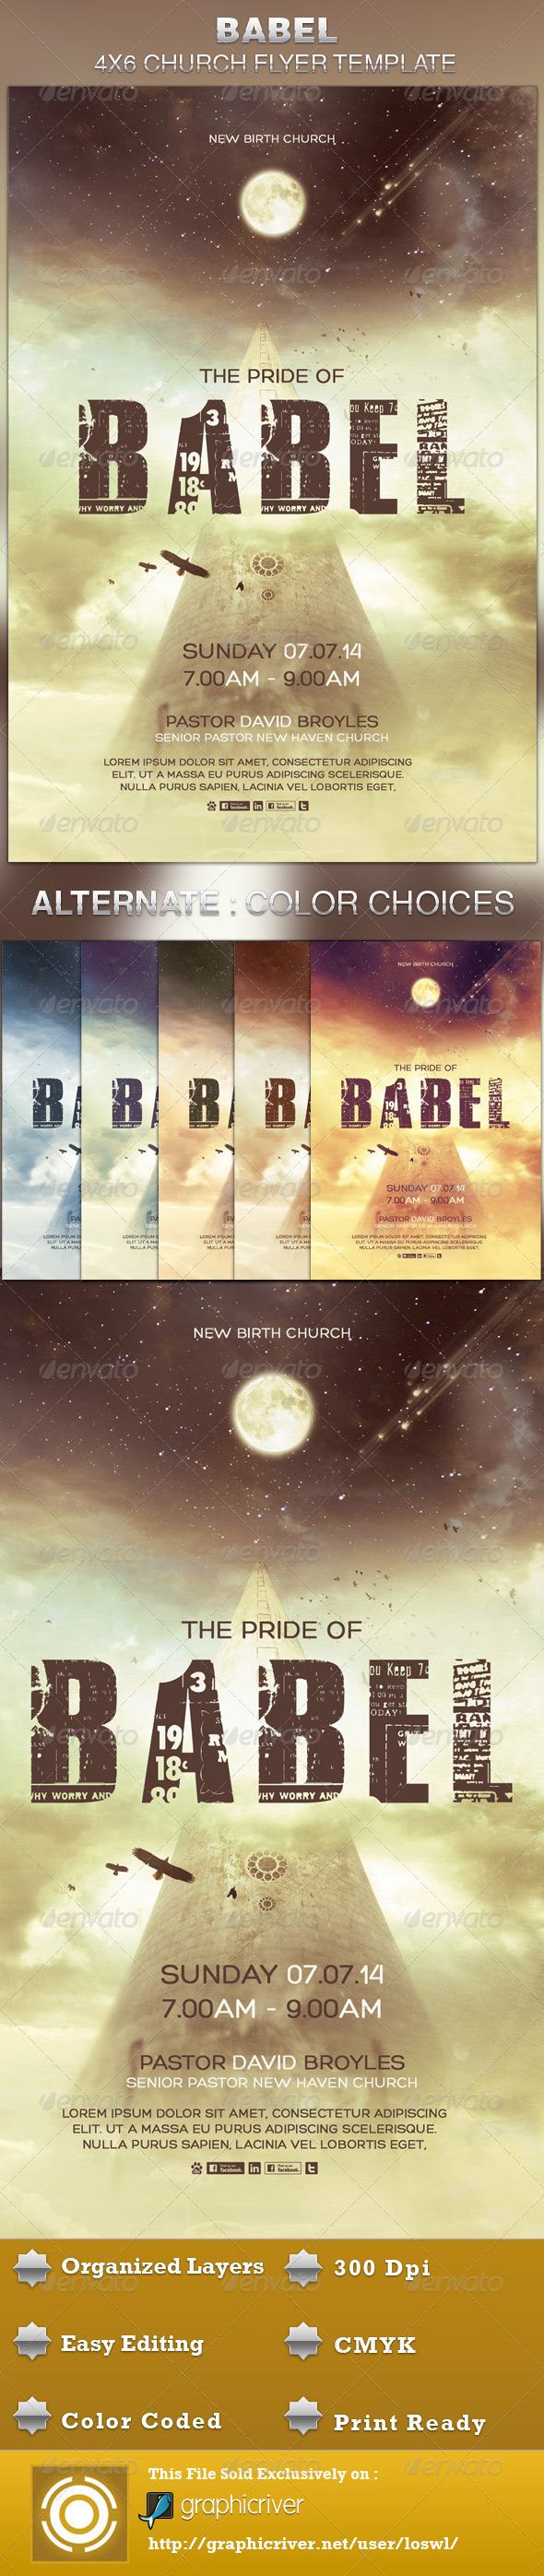 GraphicRiver Babel Church Flyer Template 5092951